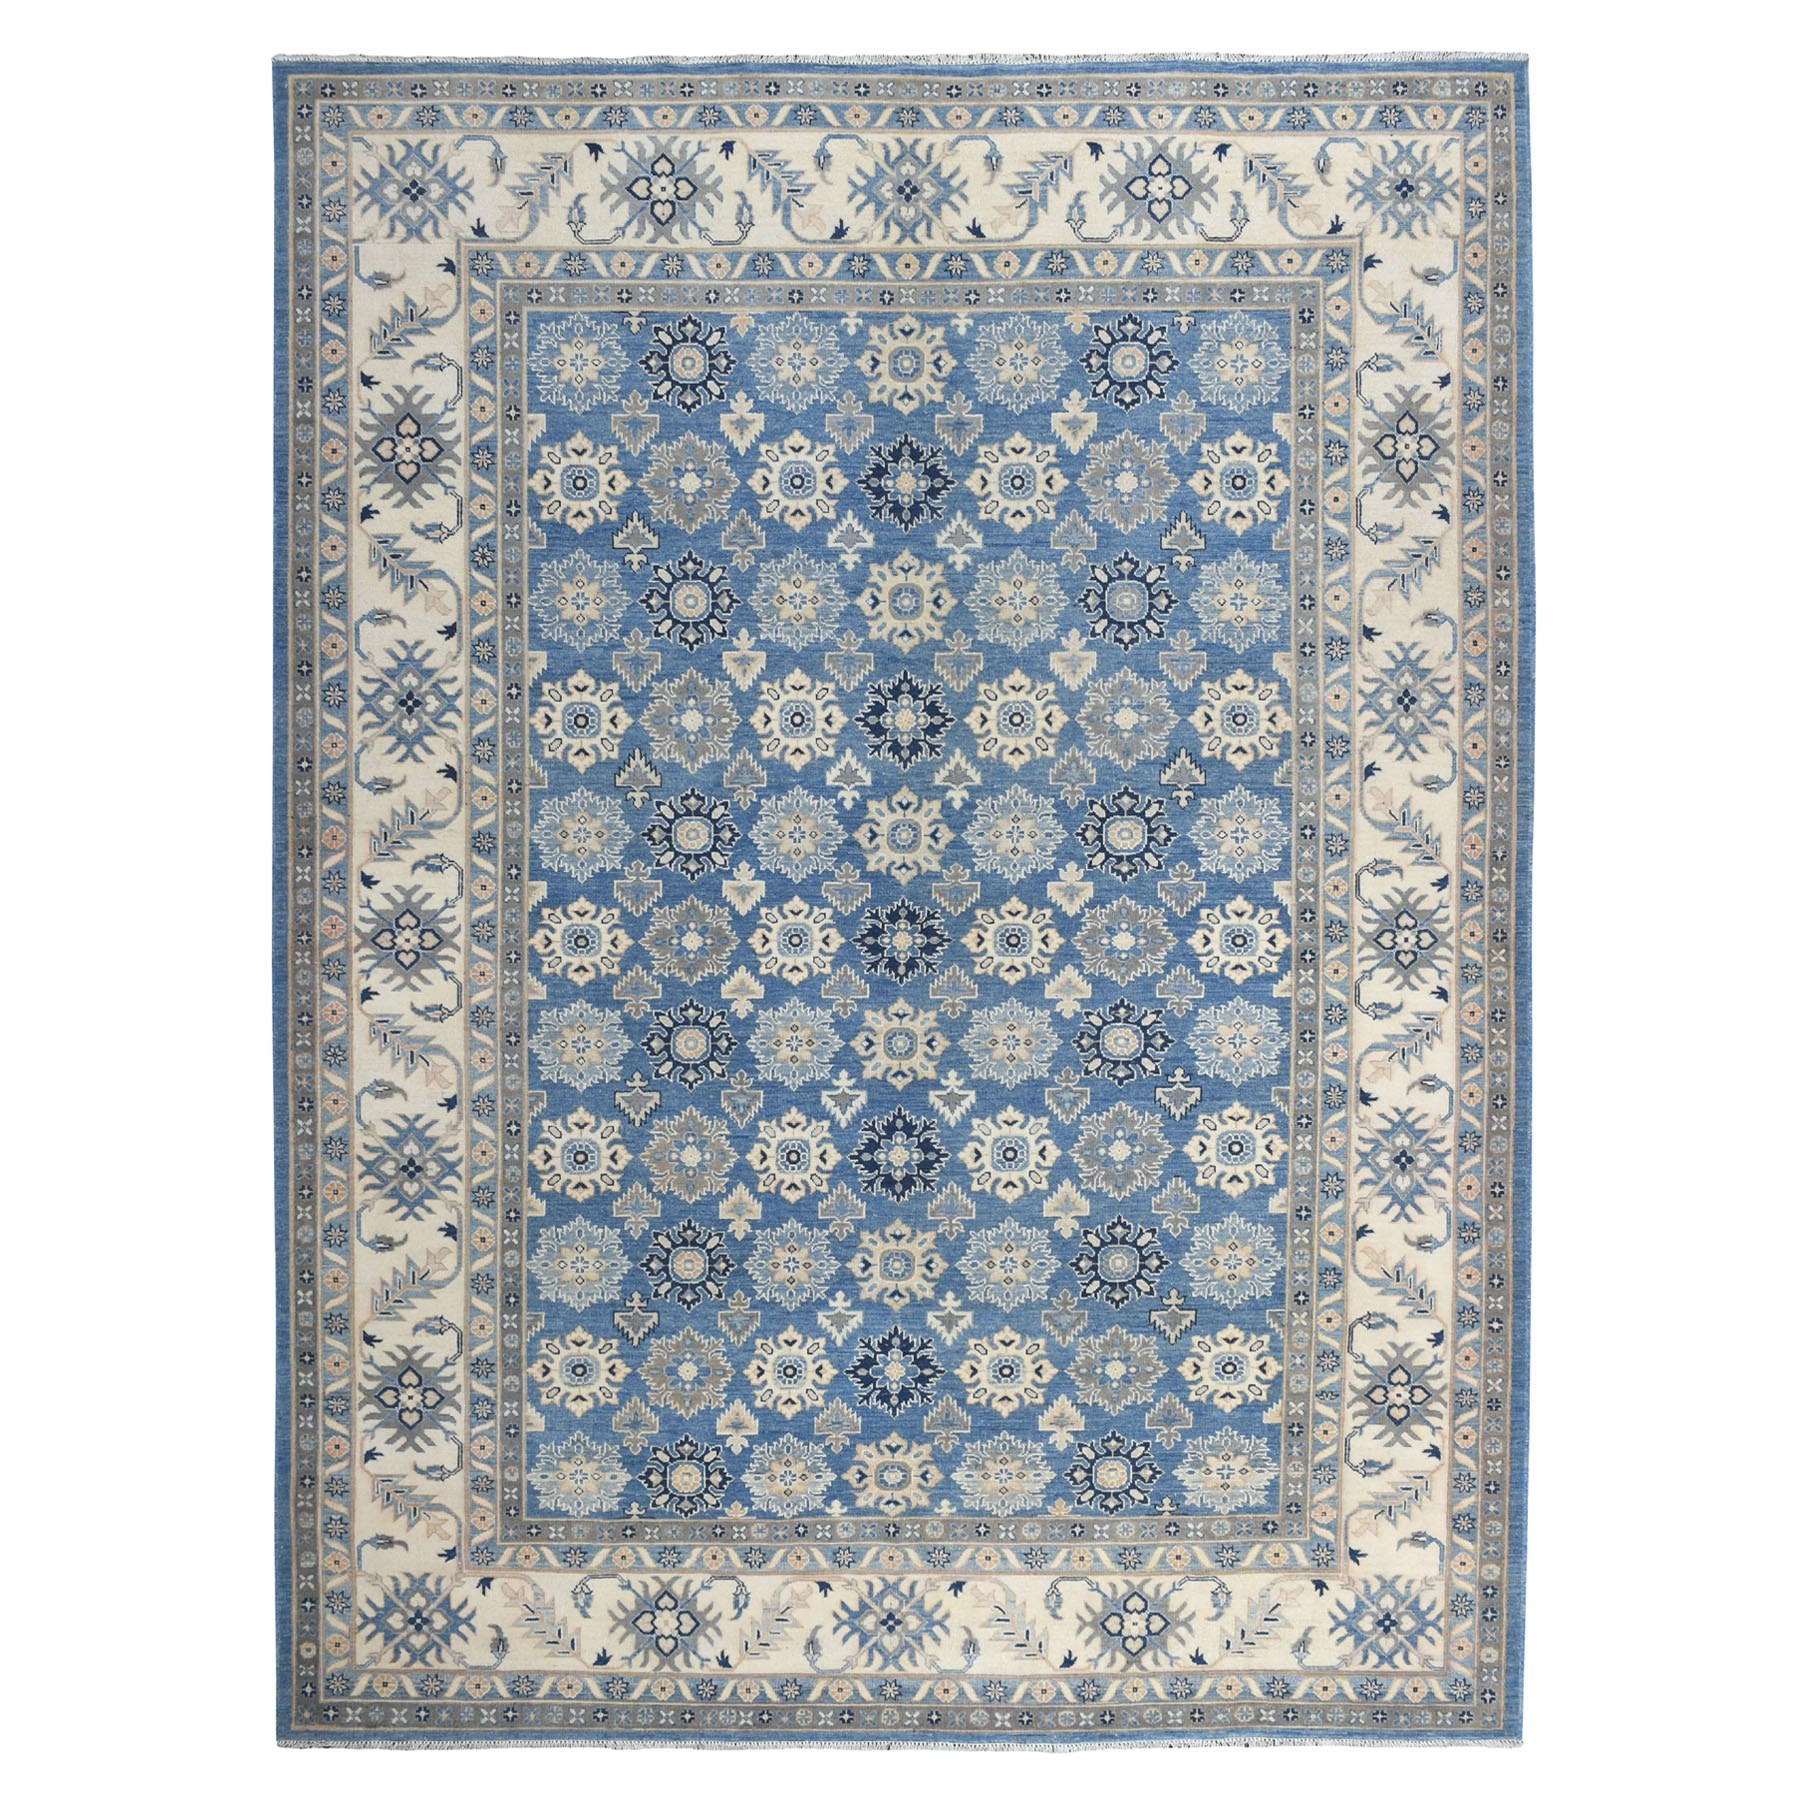 "9'1""x11'7"" Blue All Over Design Hand Knotted Organic Wool Vintage Look Kazak Oriental Rug"